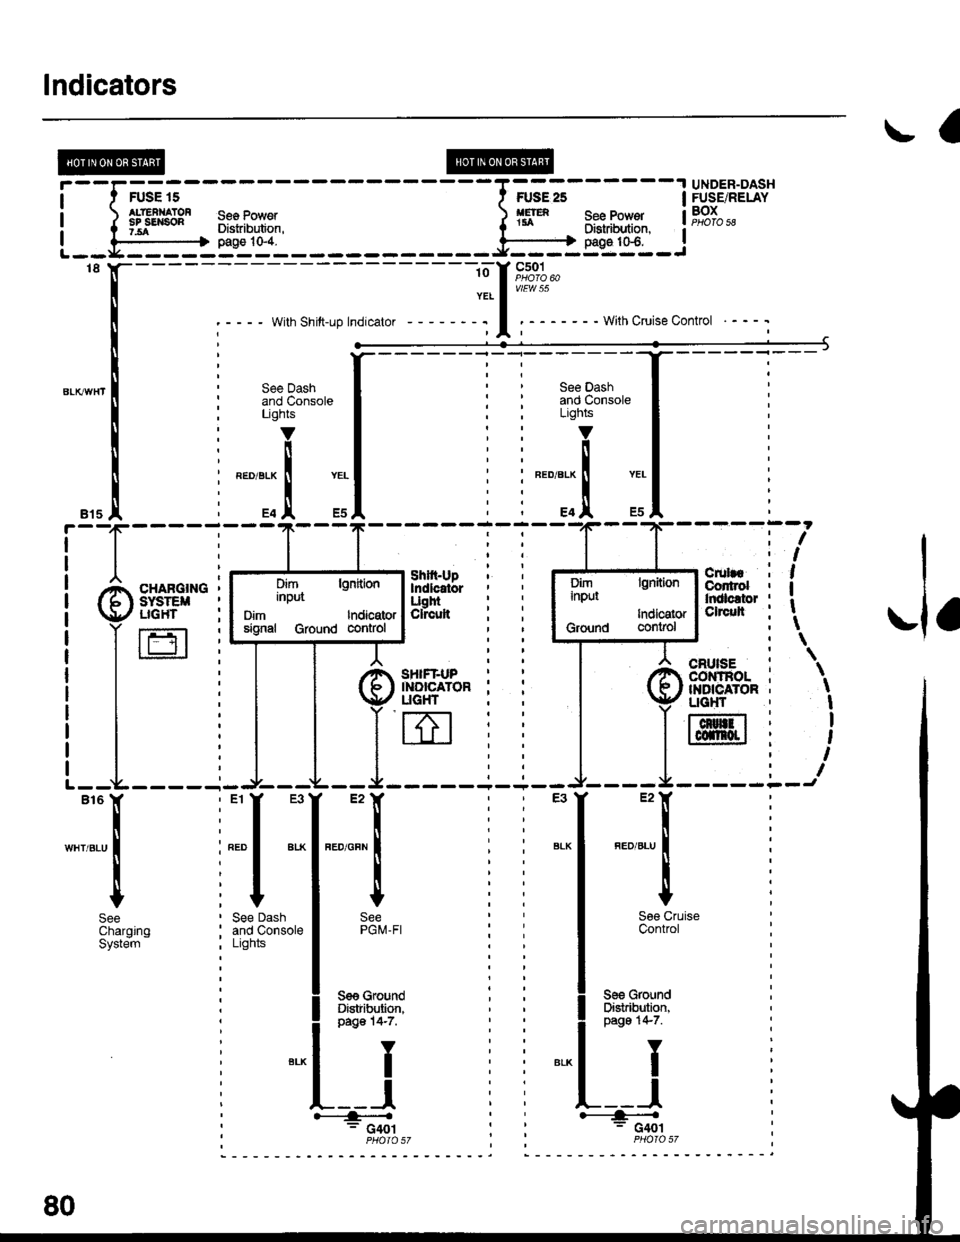 Daewoo Nubira Stereo Wiring Diagram Tamahuproject Org Lanos Car Fuse furthermore 2000 Chevrolet Prizm Fuse Box Diagram furthermore 1994 Geo Metro Automatic Transmission Diagram also Dodge Police Interceptor Wiring Diagrams as well 1999 Chevy Prizm Wiring Harness. on 1999 chevy prizm fuse box diagram